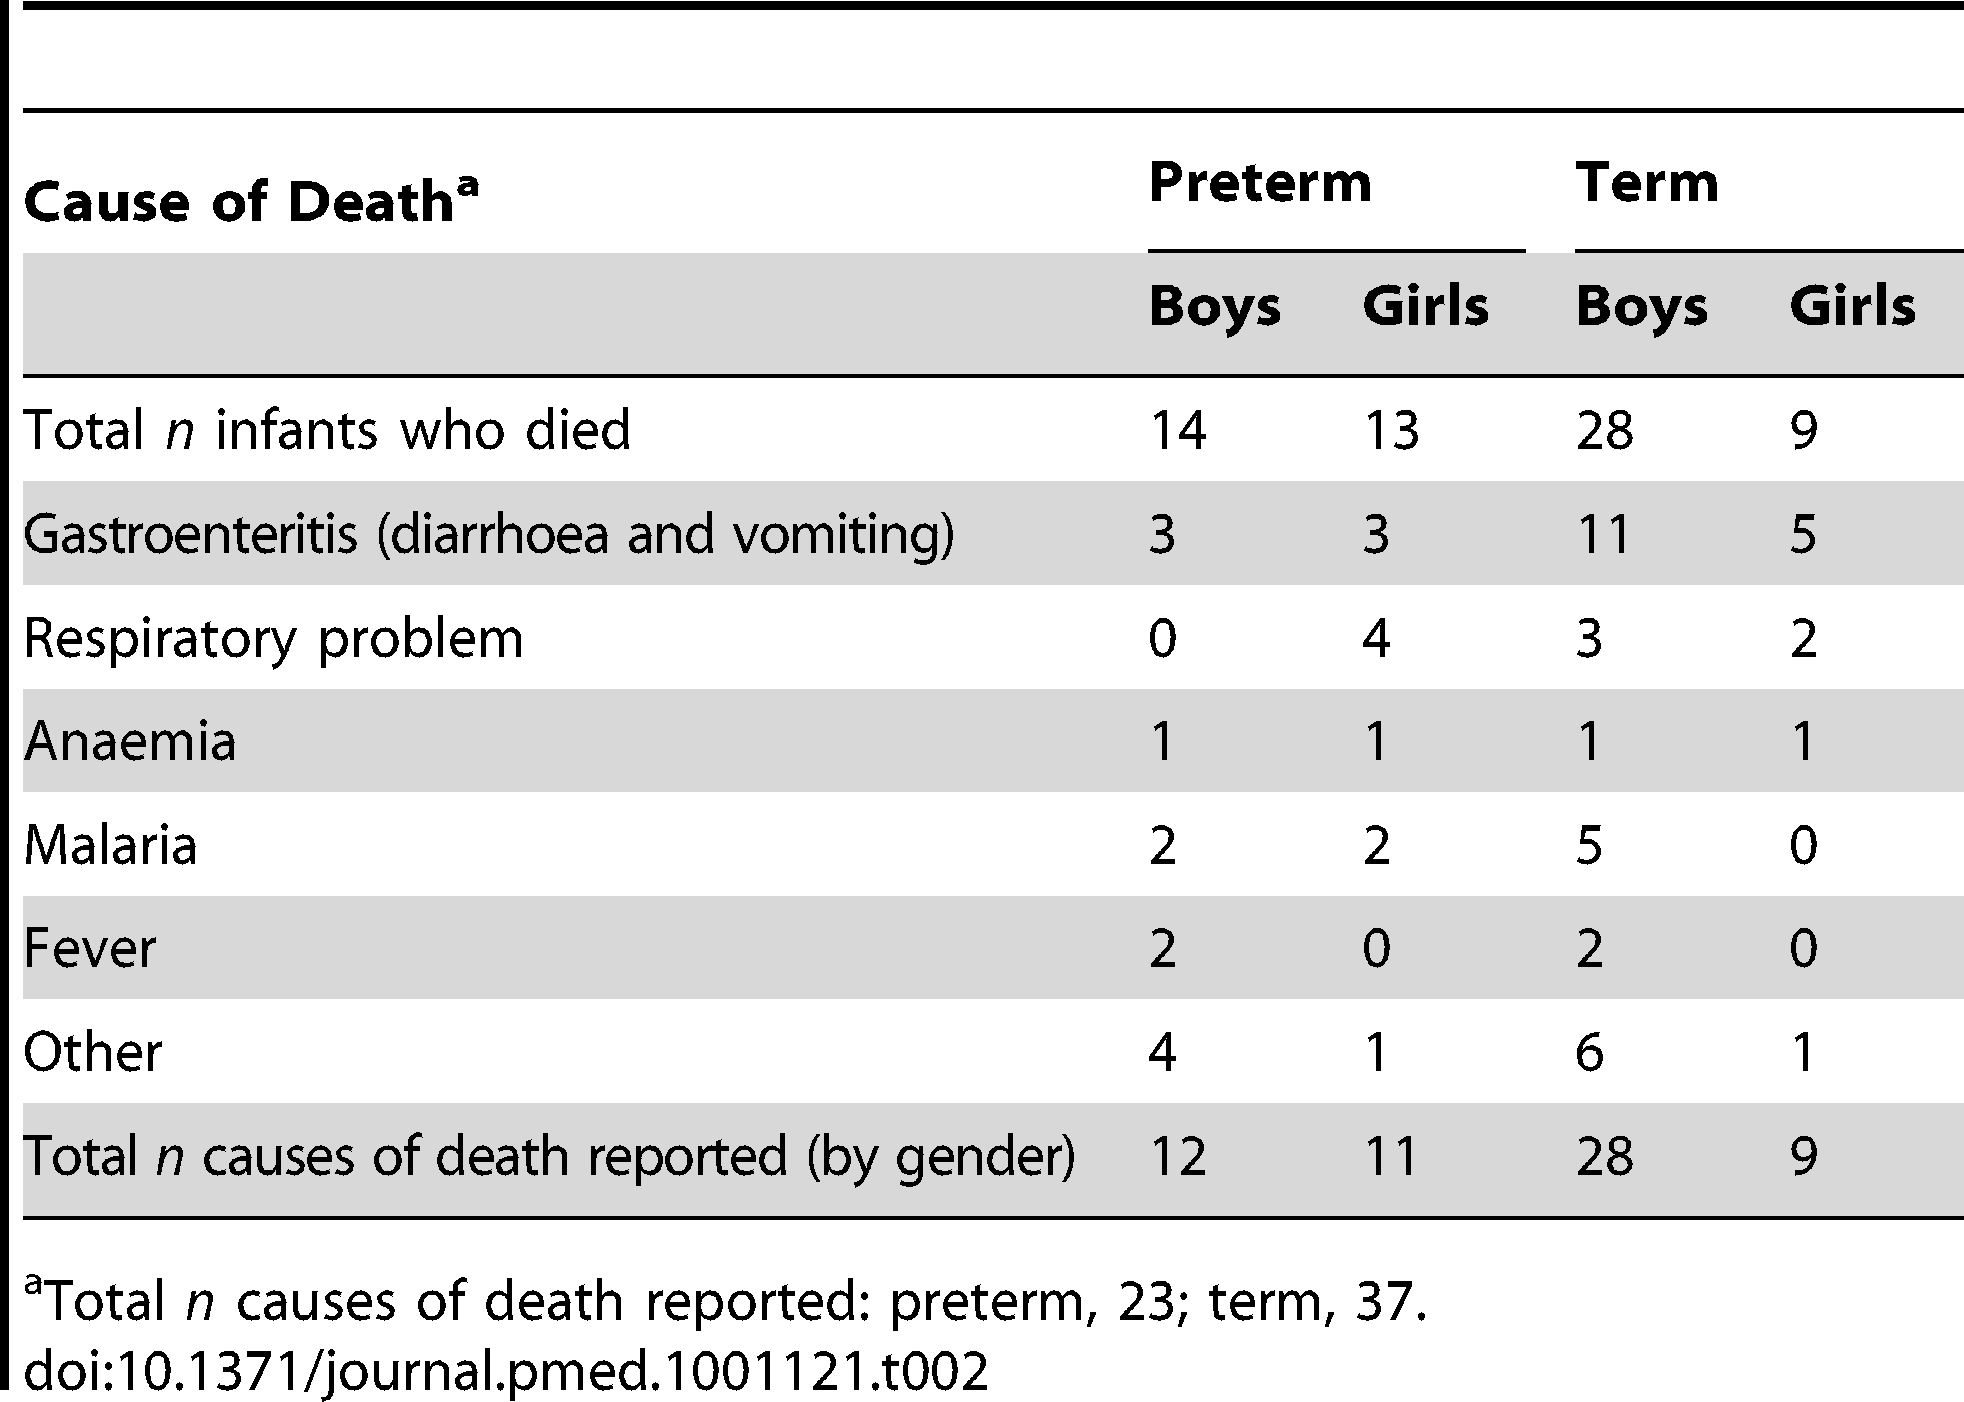 Cause of death by verbal autopsy of babies born at term and preterm (by gender).